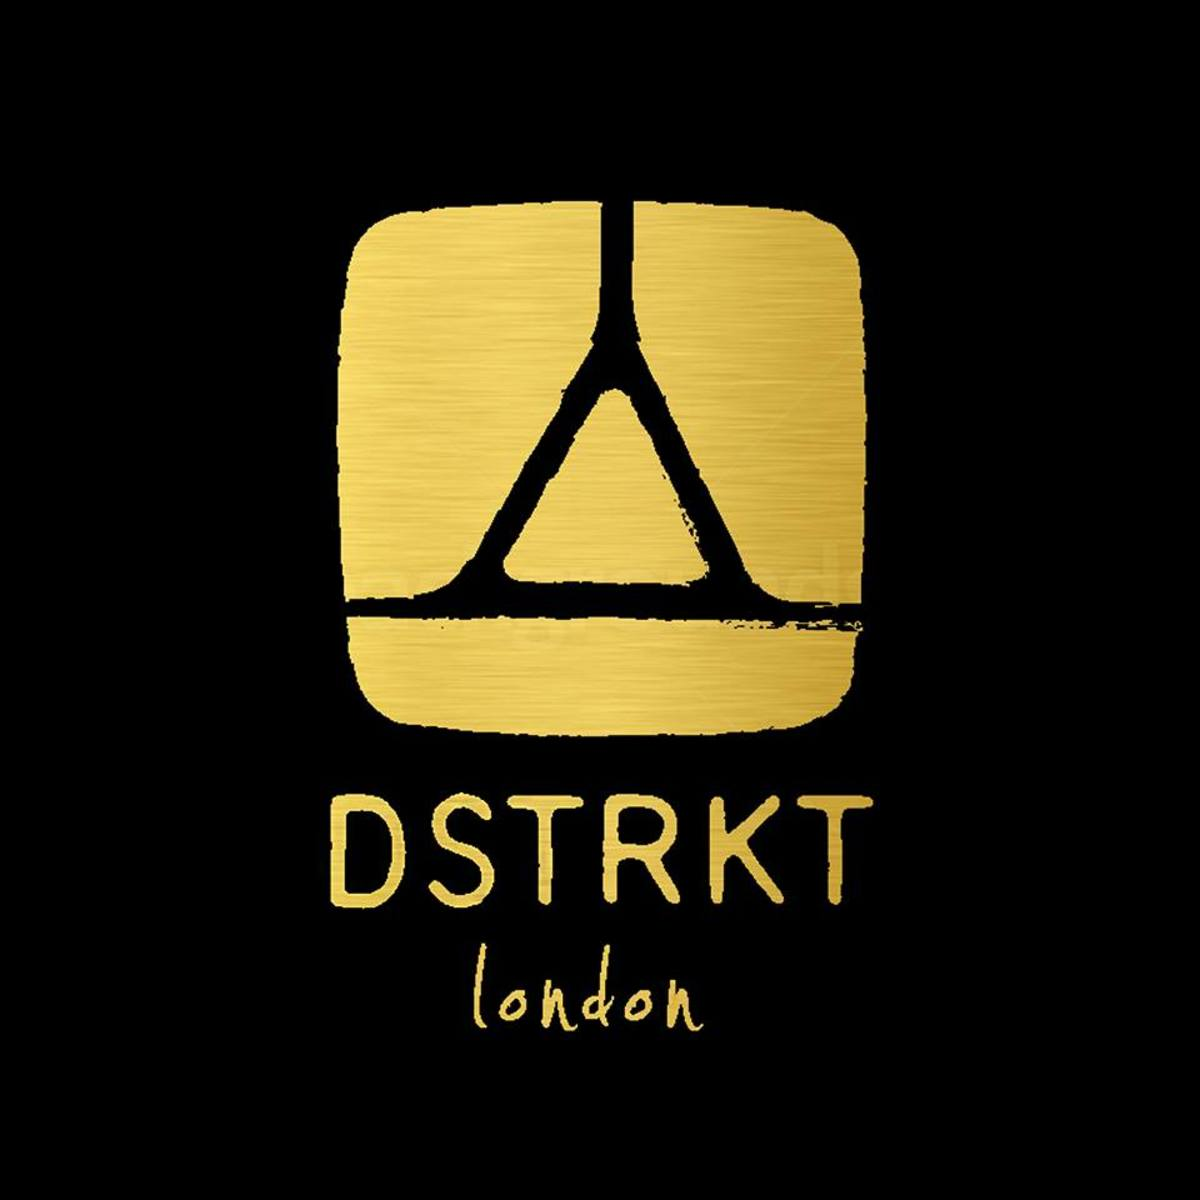 DSTRKT logo london